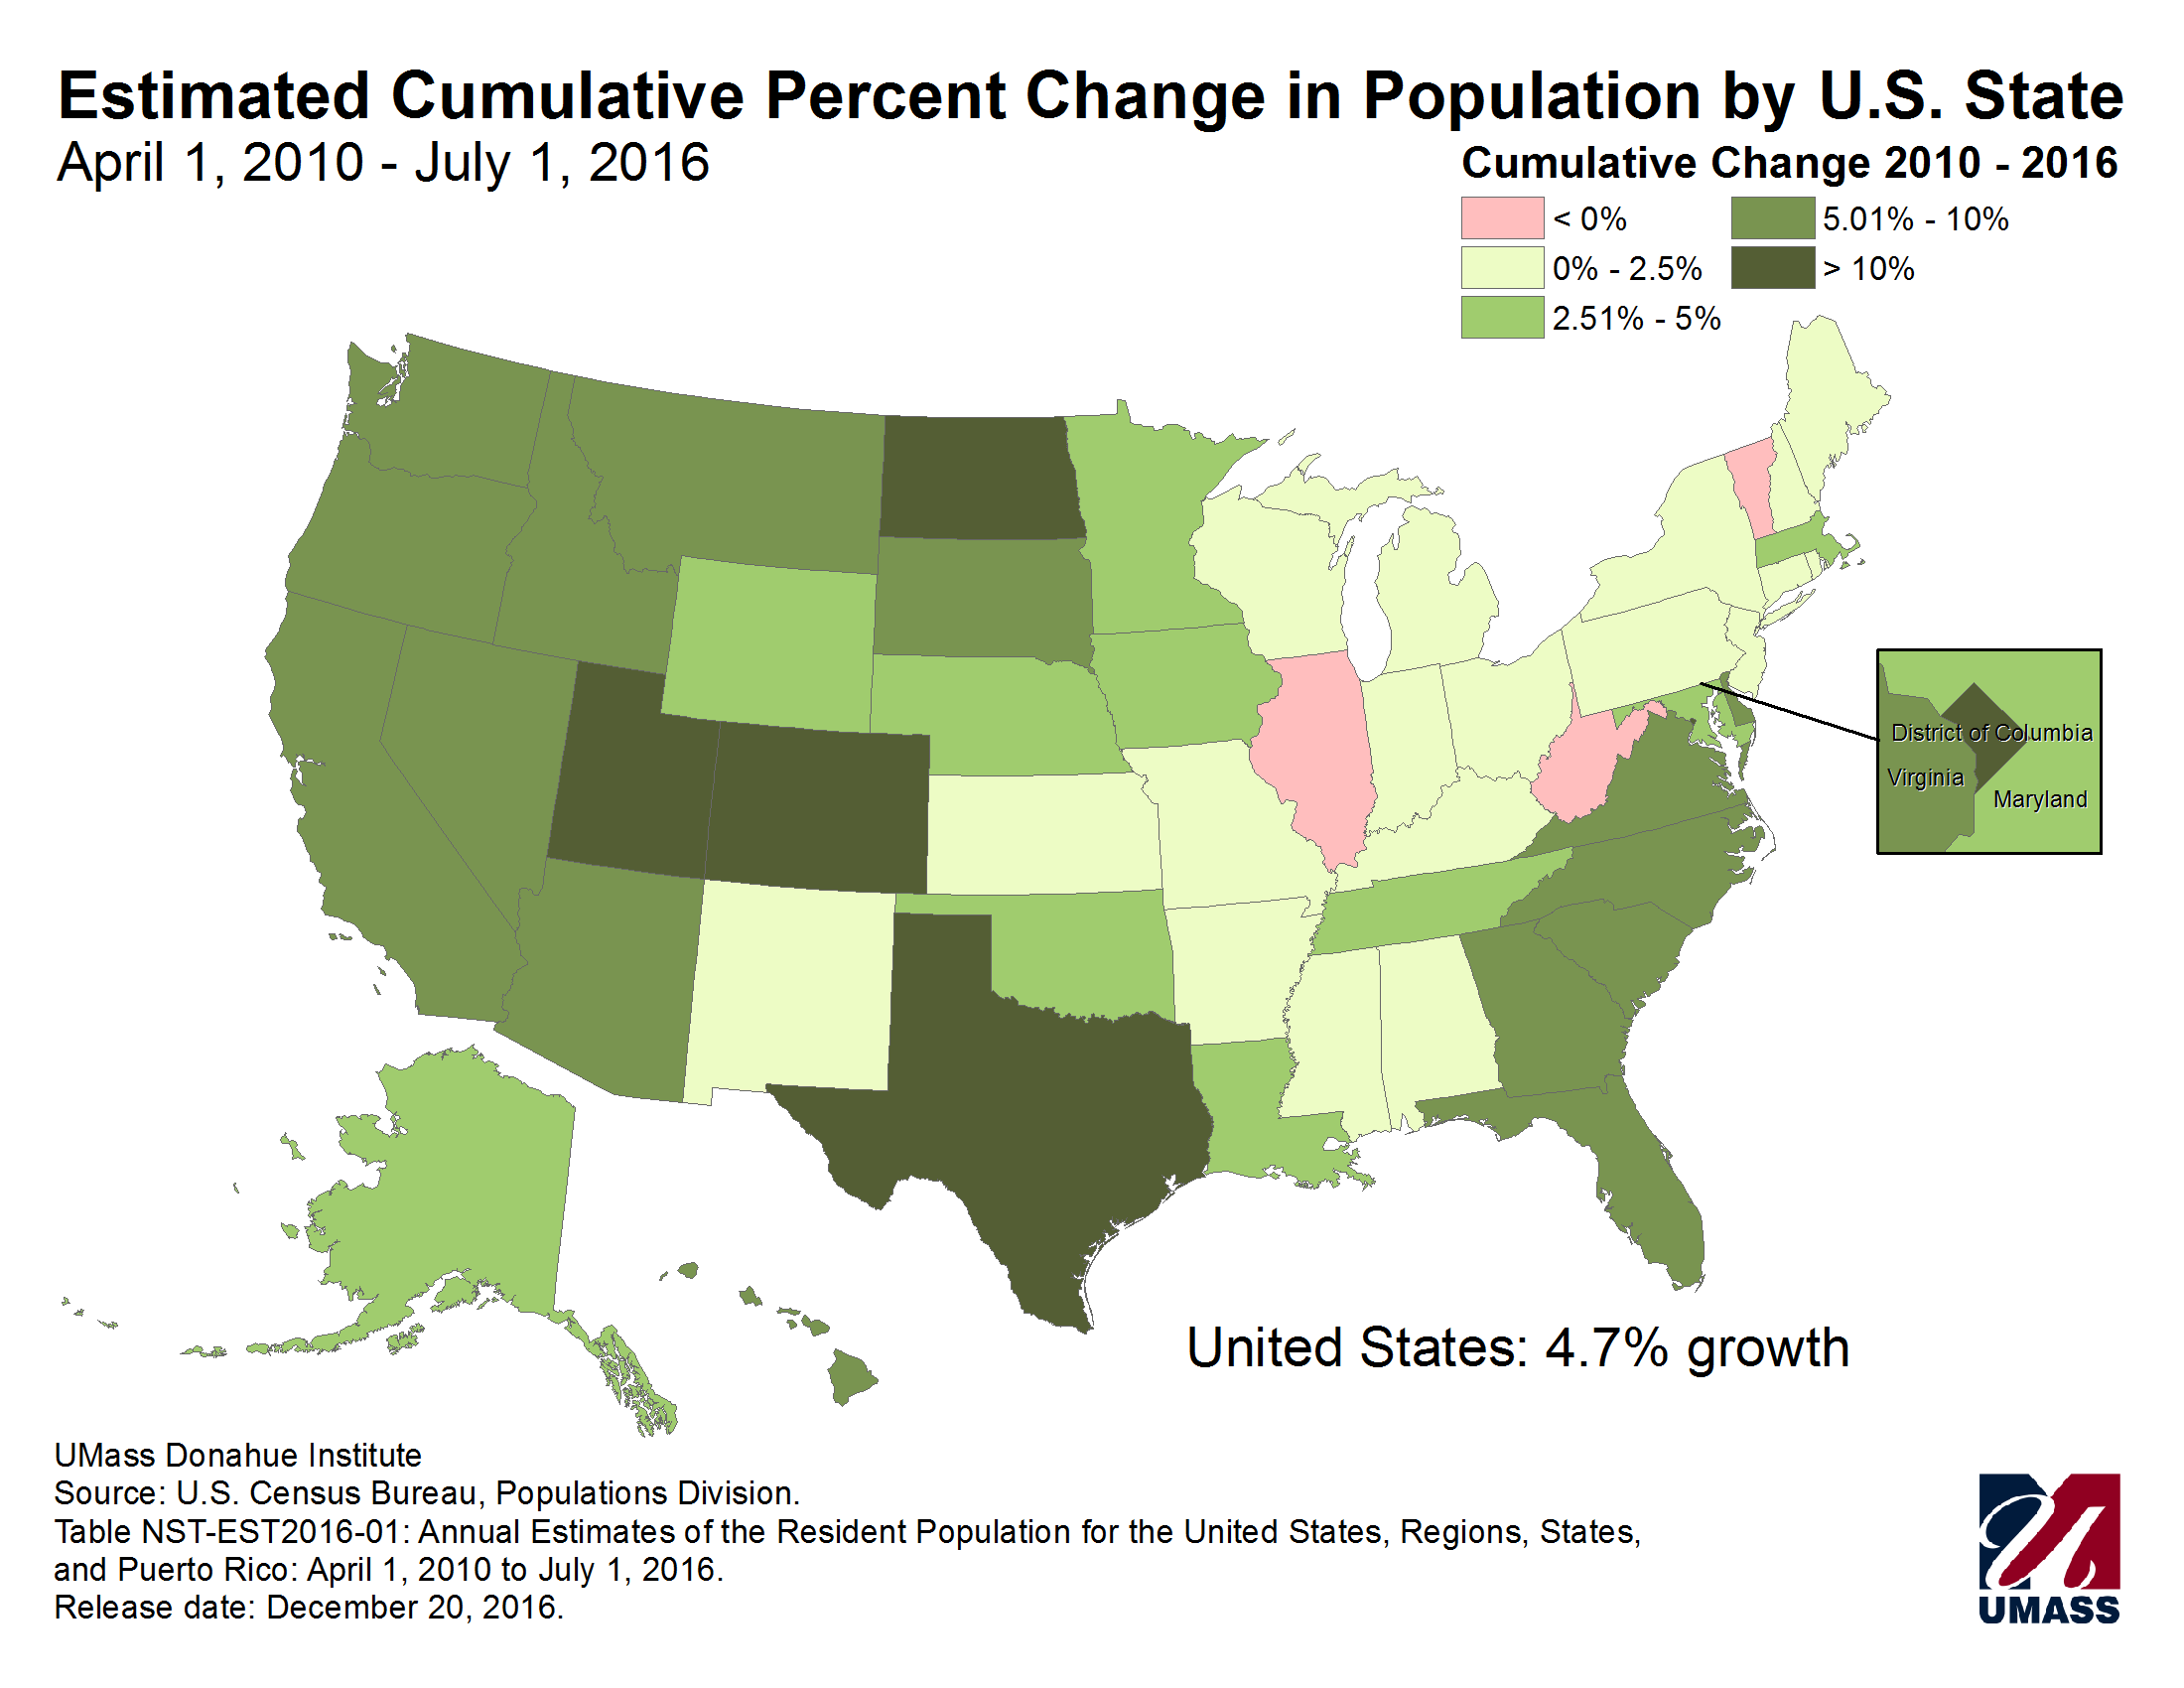 file us ulative percentage growth 2010 2016 map 12 21 png